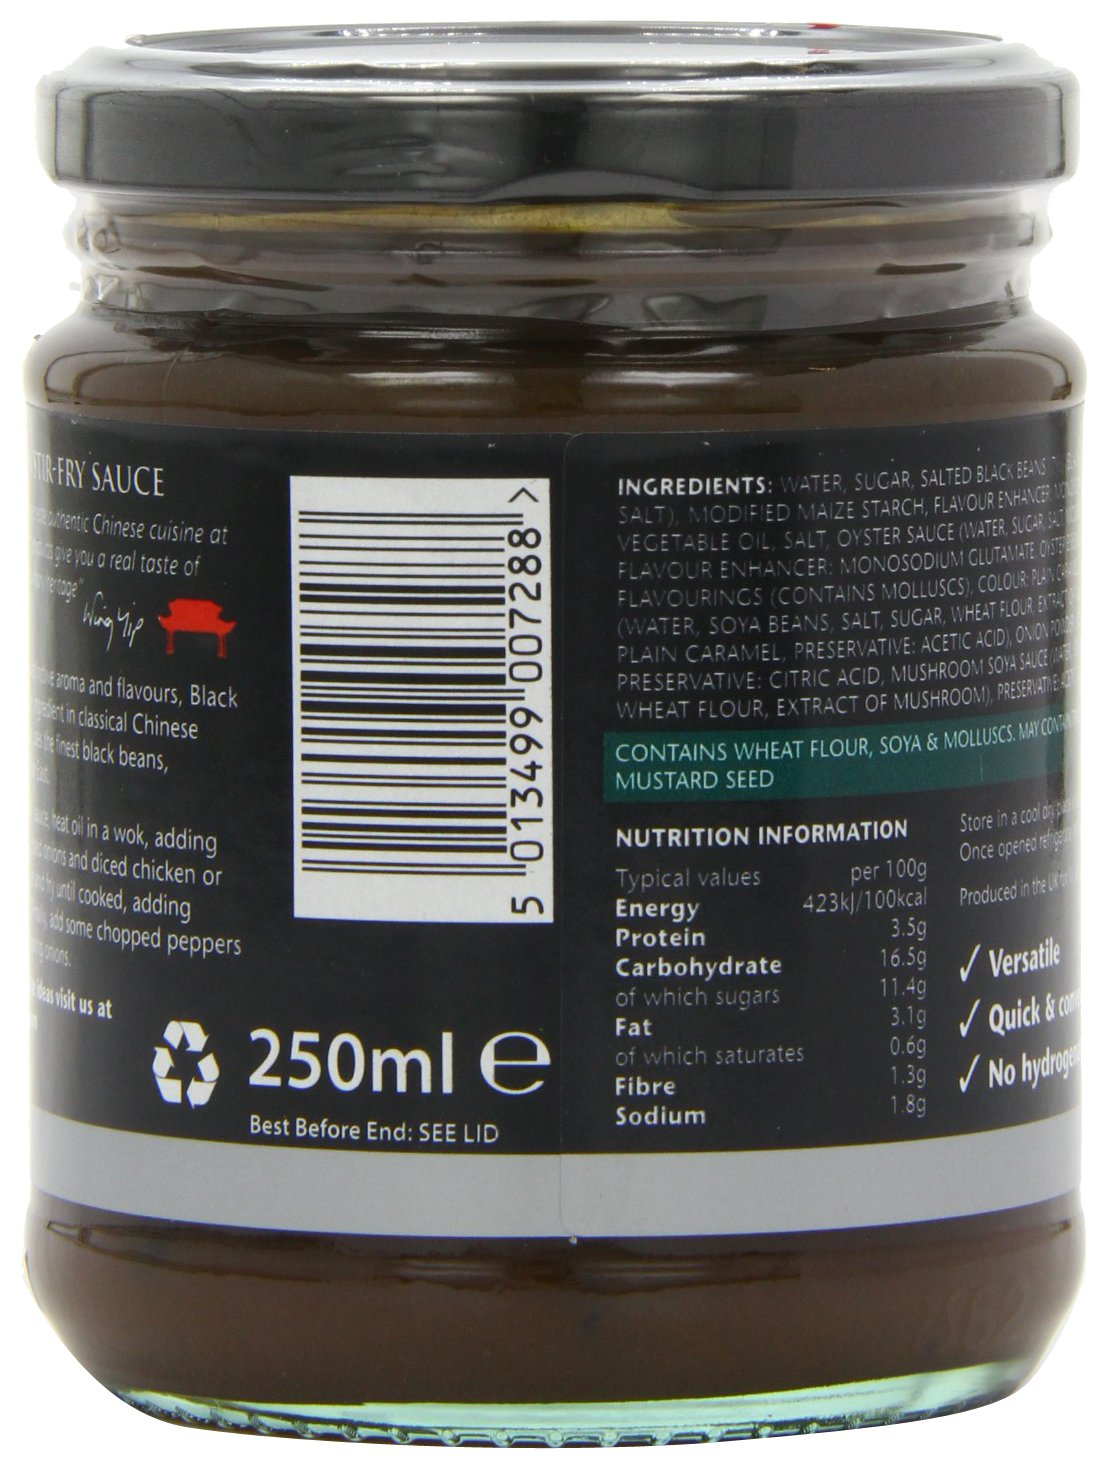 Amazon.com : Wing Yip Stir Fry Sauce - Black Bean (250ml) - Pack of 6 : Grocery & Gourmet Food